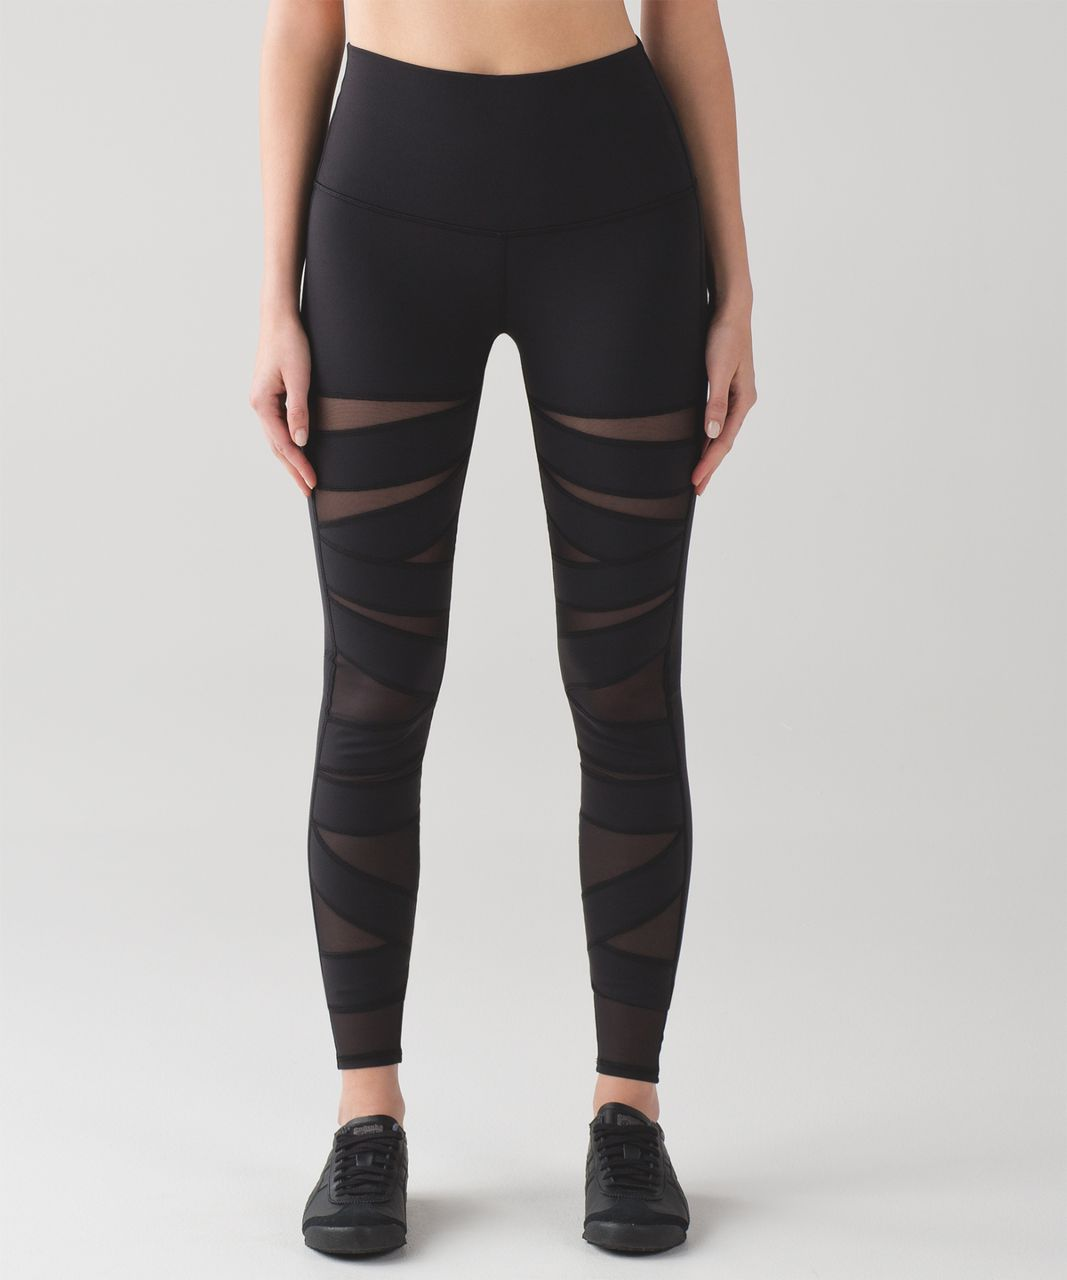 Lululemon Wunder Under Pant (Hi-Rise) (Tech Mesh) - Black